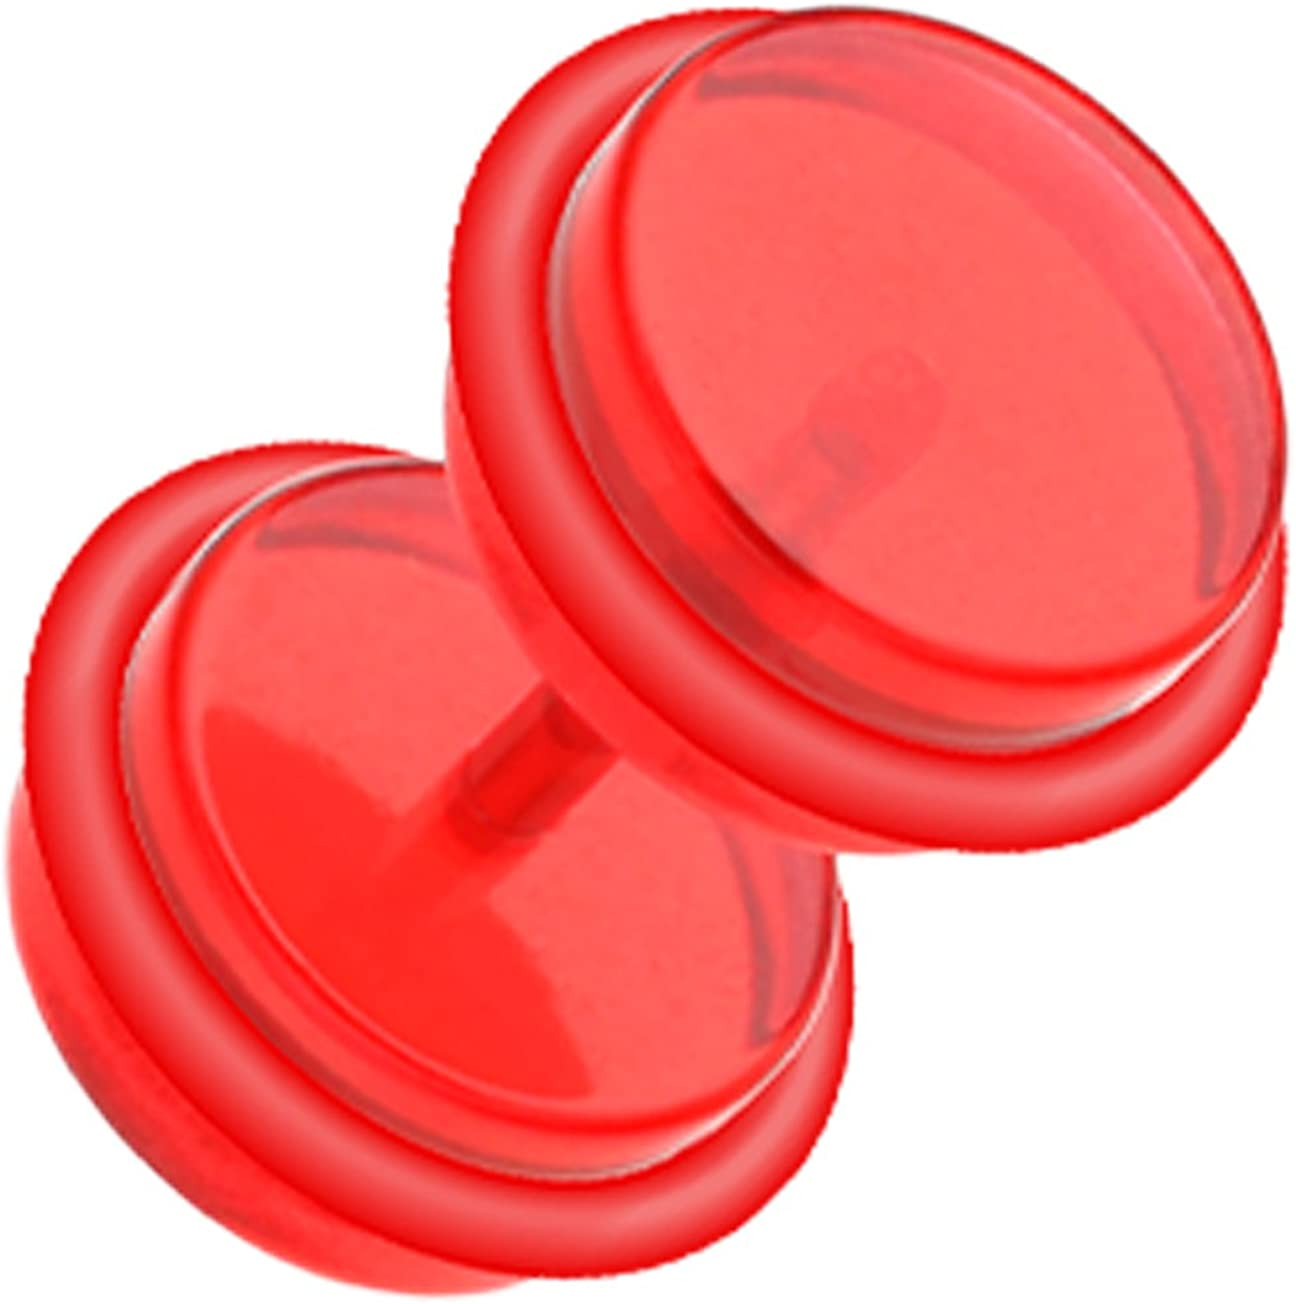 Solid Acrylic Fake Cheap sale Plug with O-Rings Size Ball 16 1.2mm Brand Cheap Sale Venue GA -